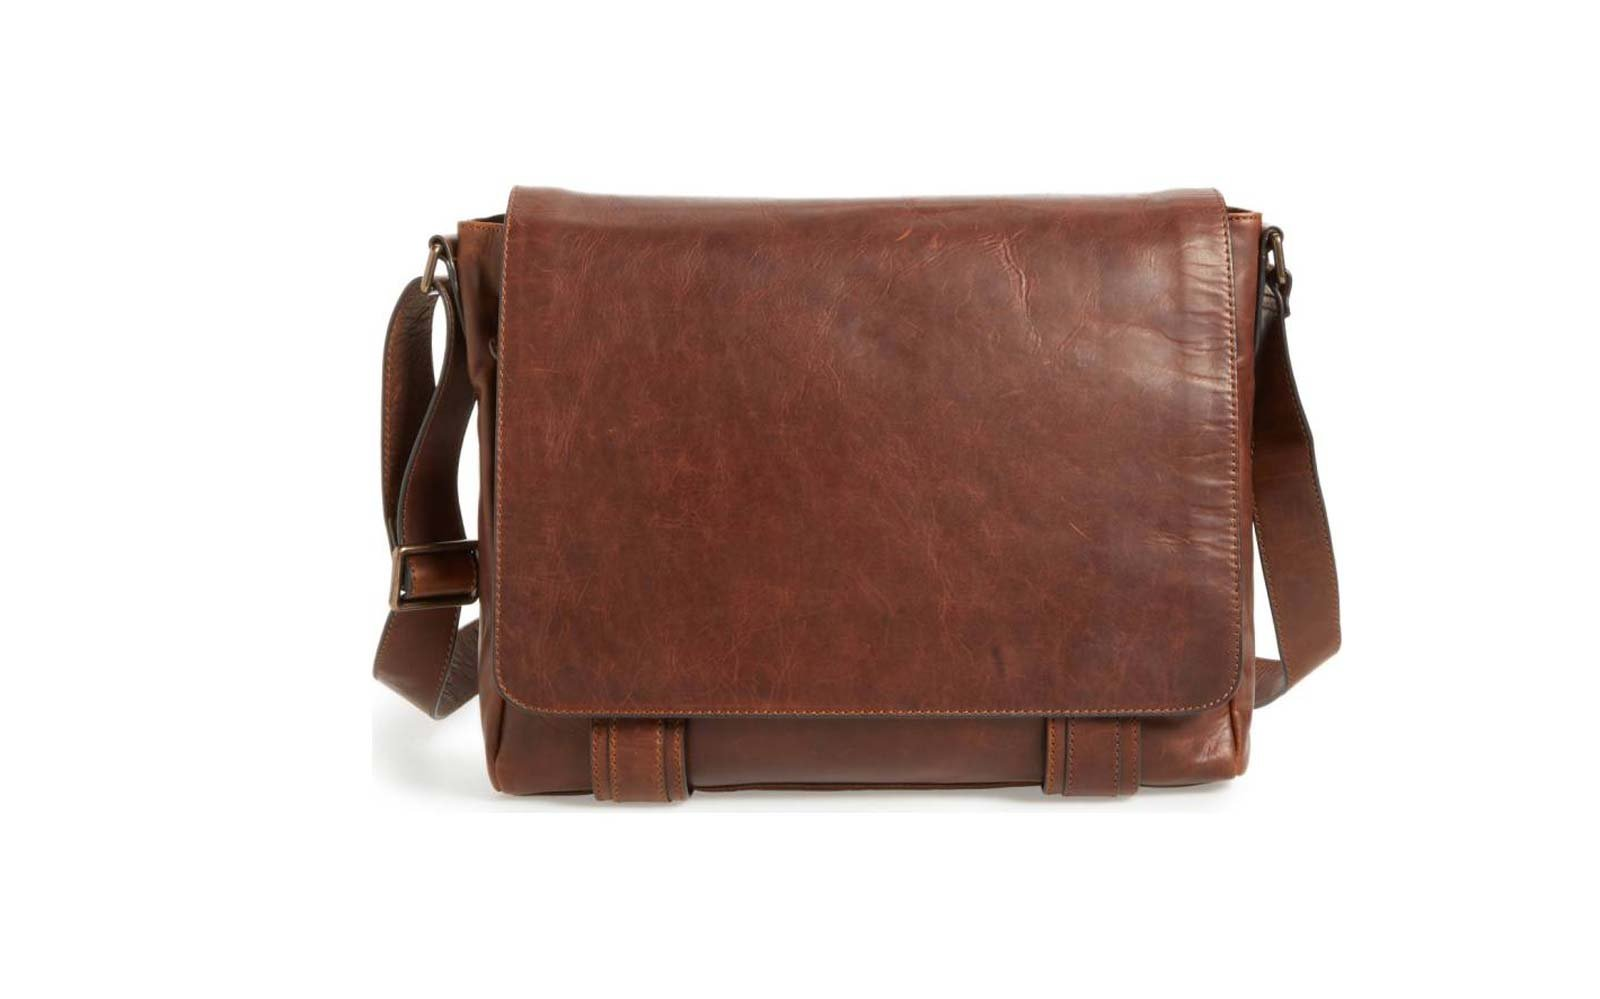 eb8291922d The 9 Best Leather Messenger Bags for Men